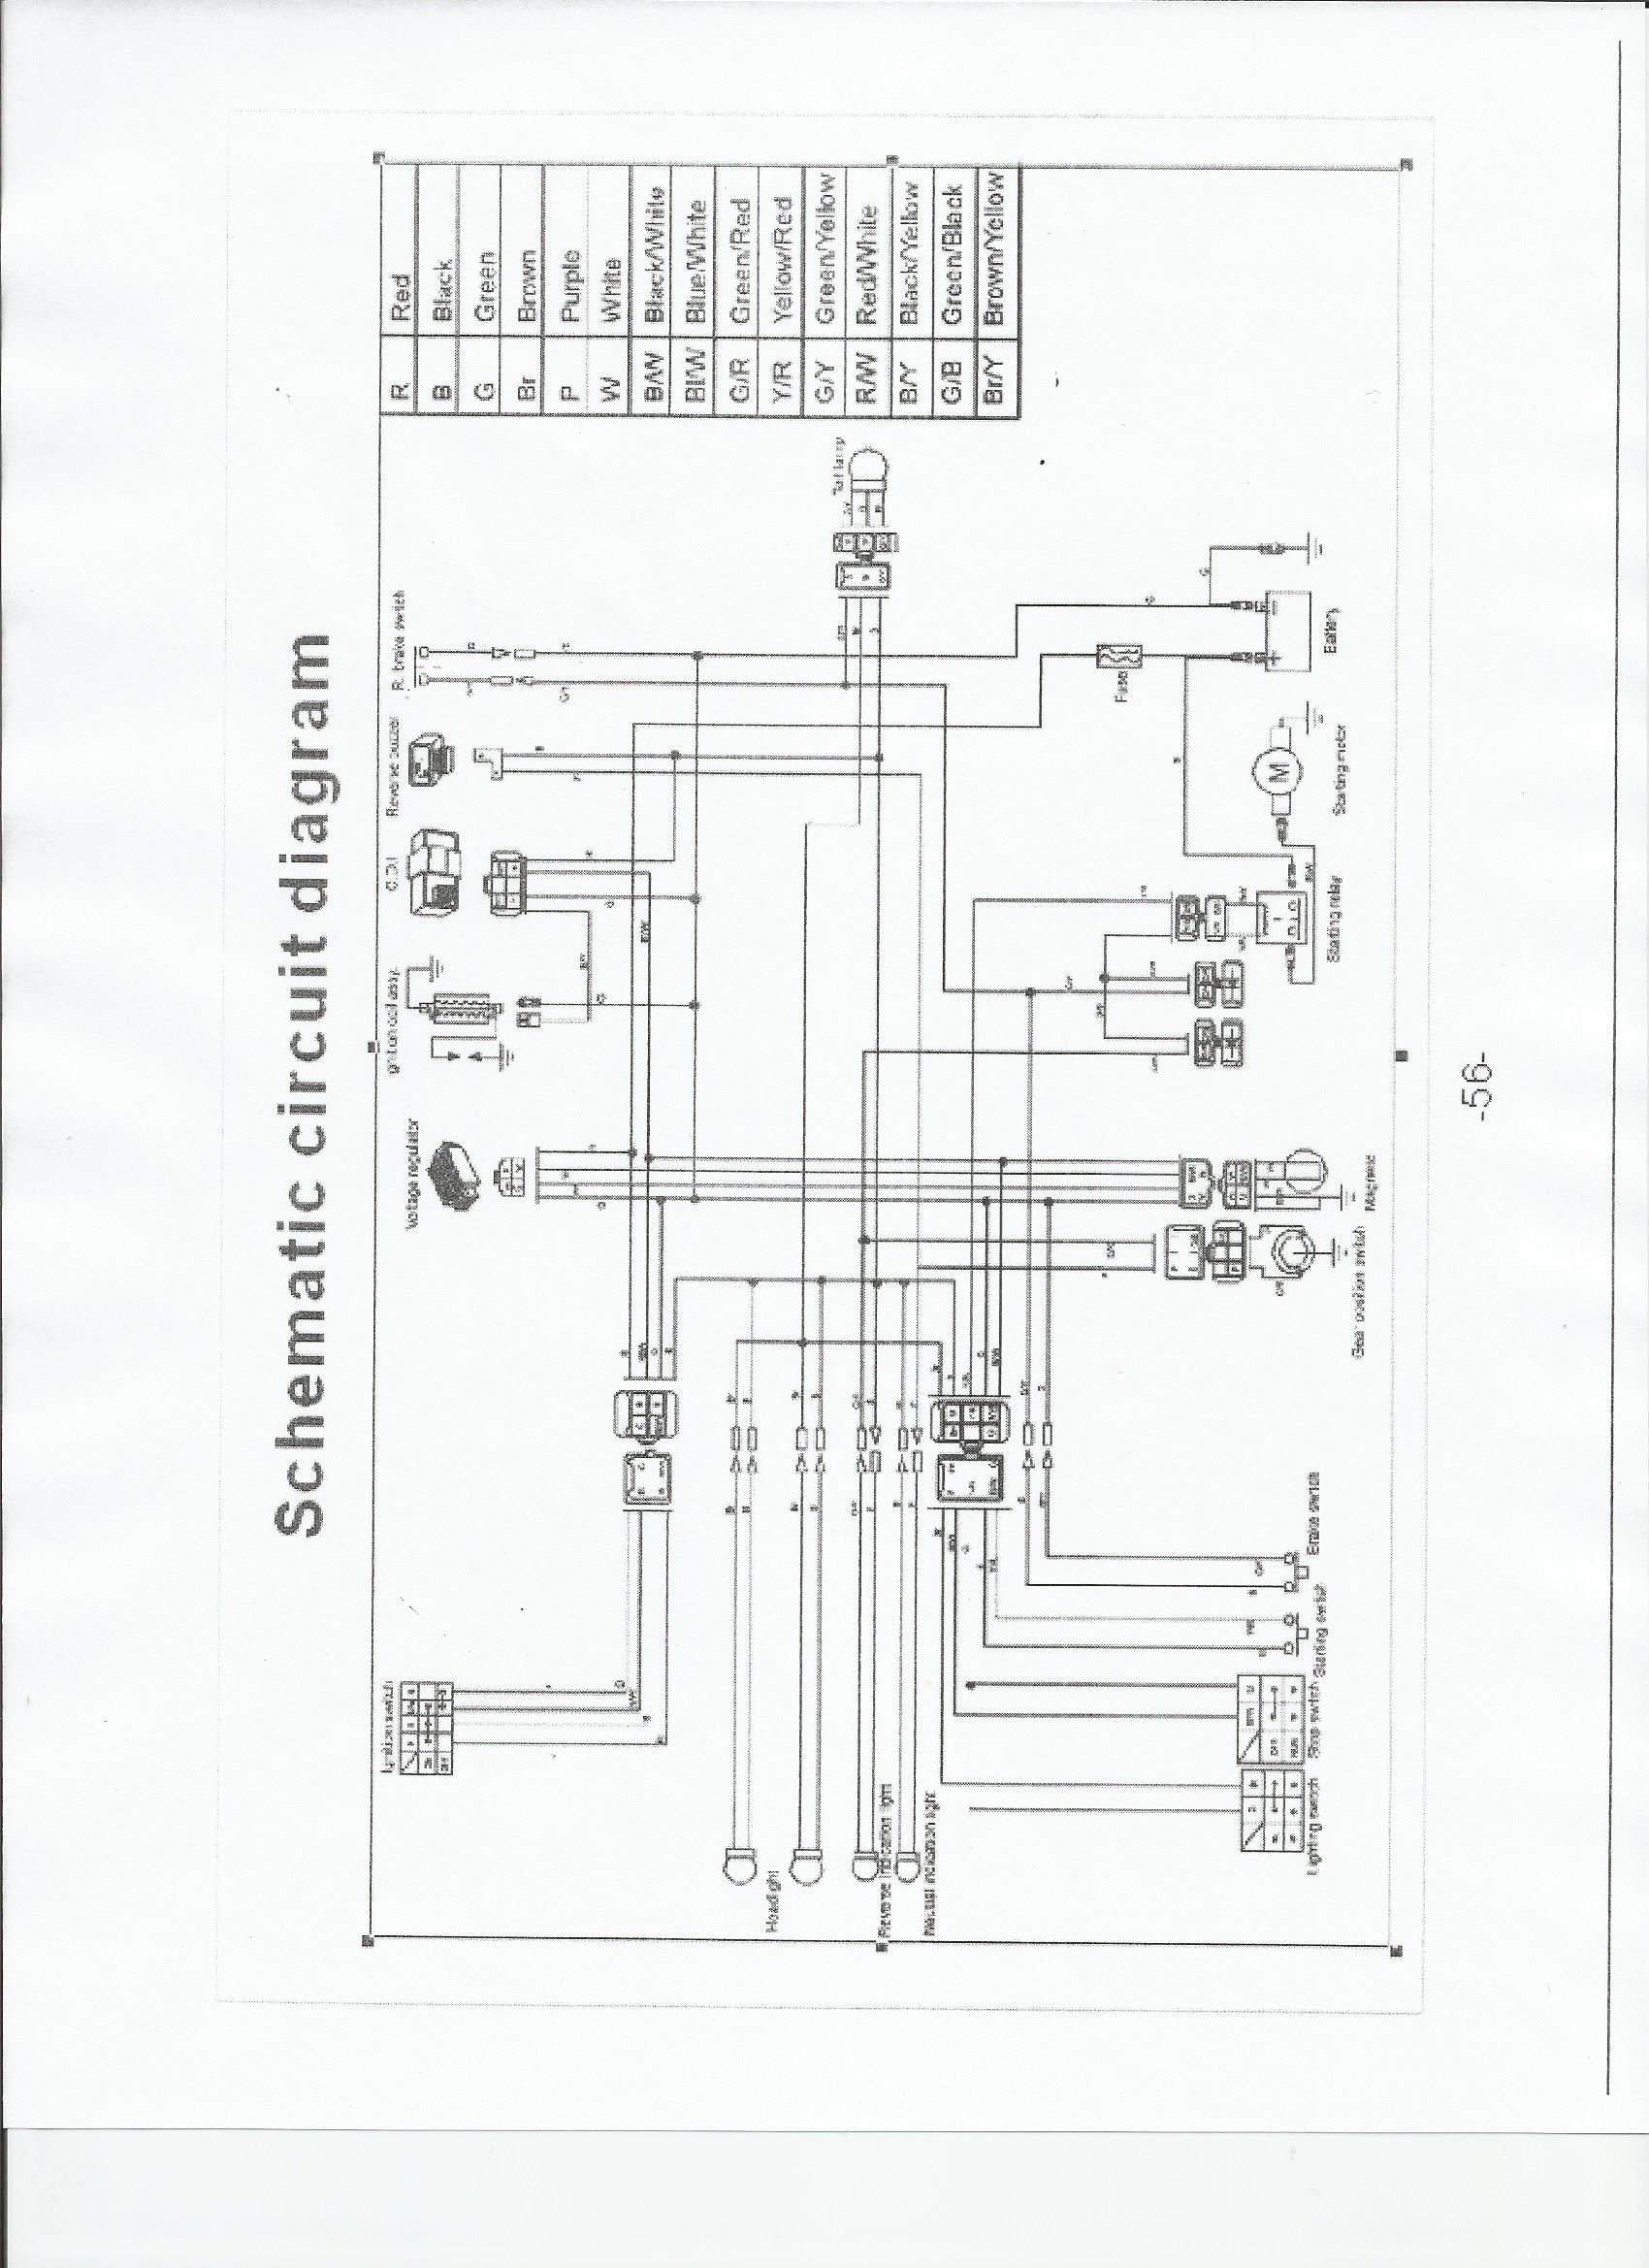 tao tao wiring schematic taotao mini and youth atv wiring schematic familygokarts support 125cc chinese atv wiring diagram at edmiracle.co